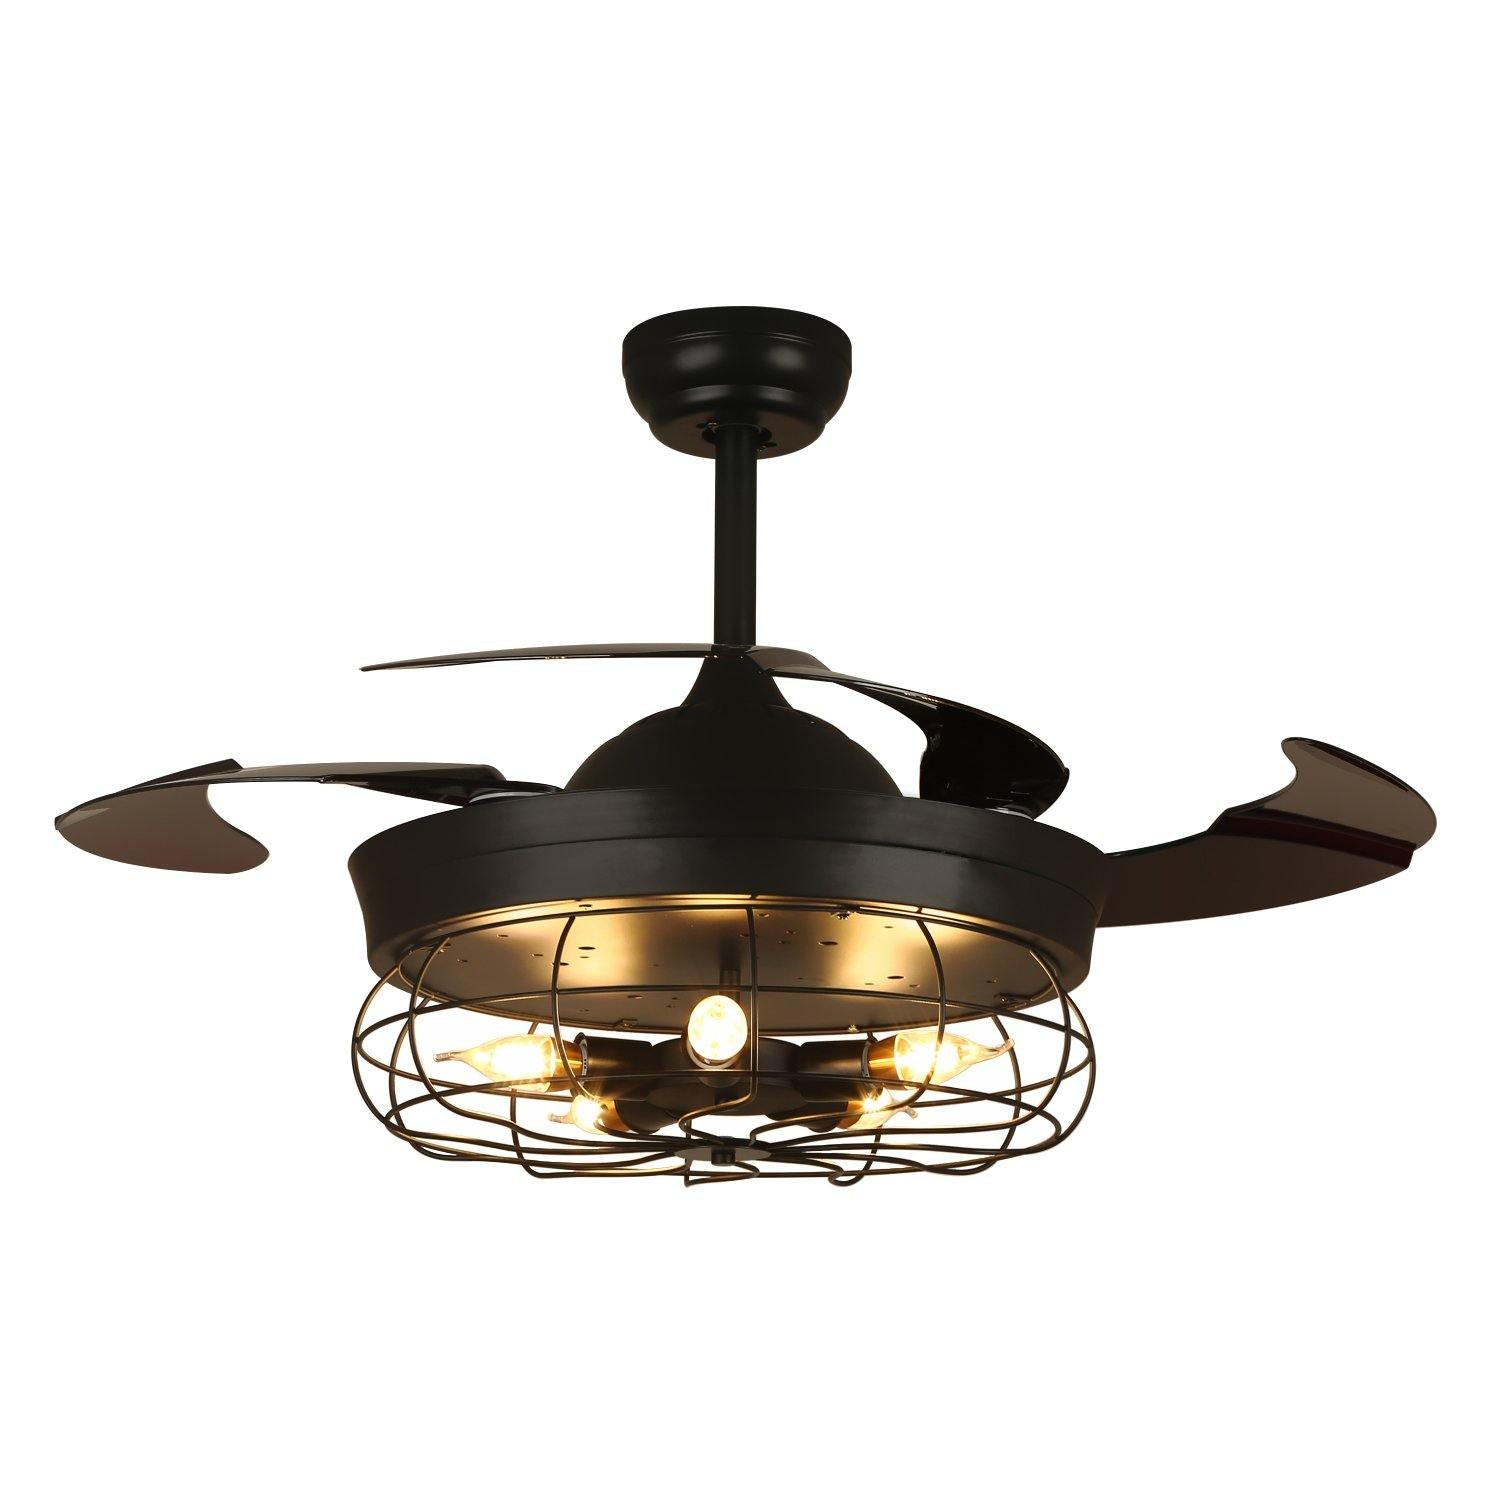 Industrial Fan Light With Invisible Blade Vintage Caged Chandelier Fan 7pm Lighting